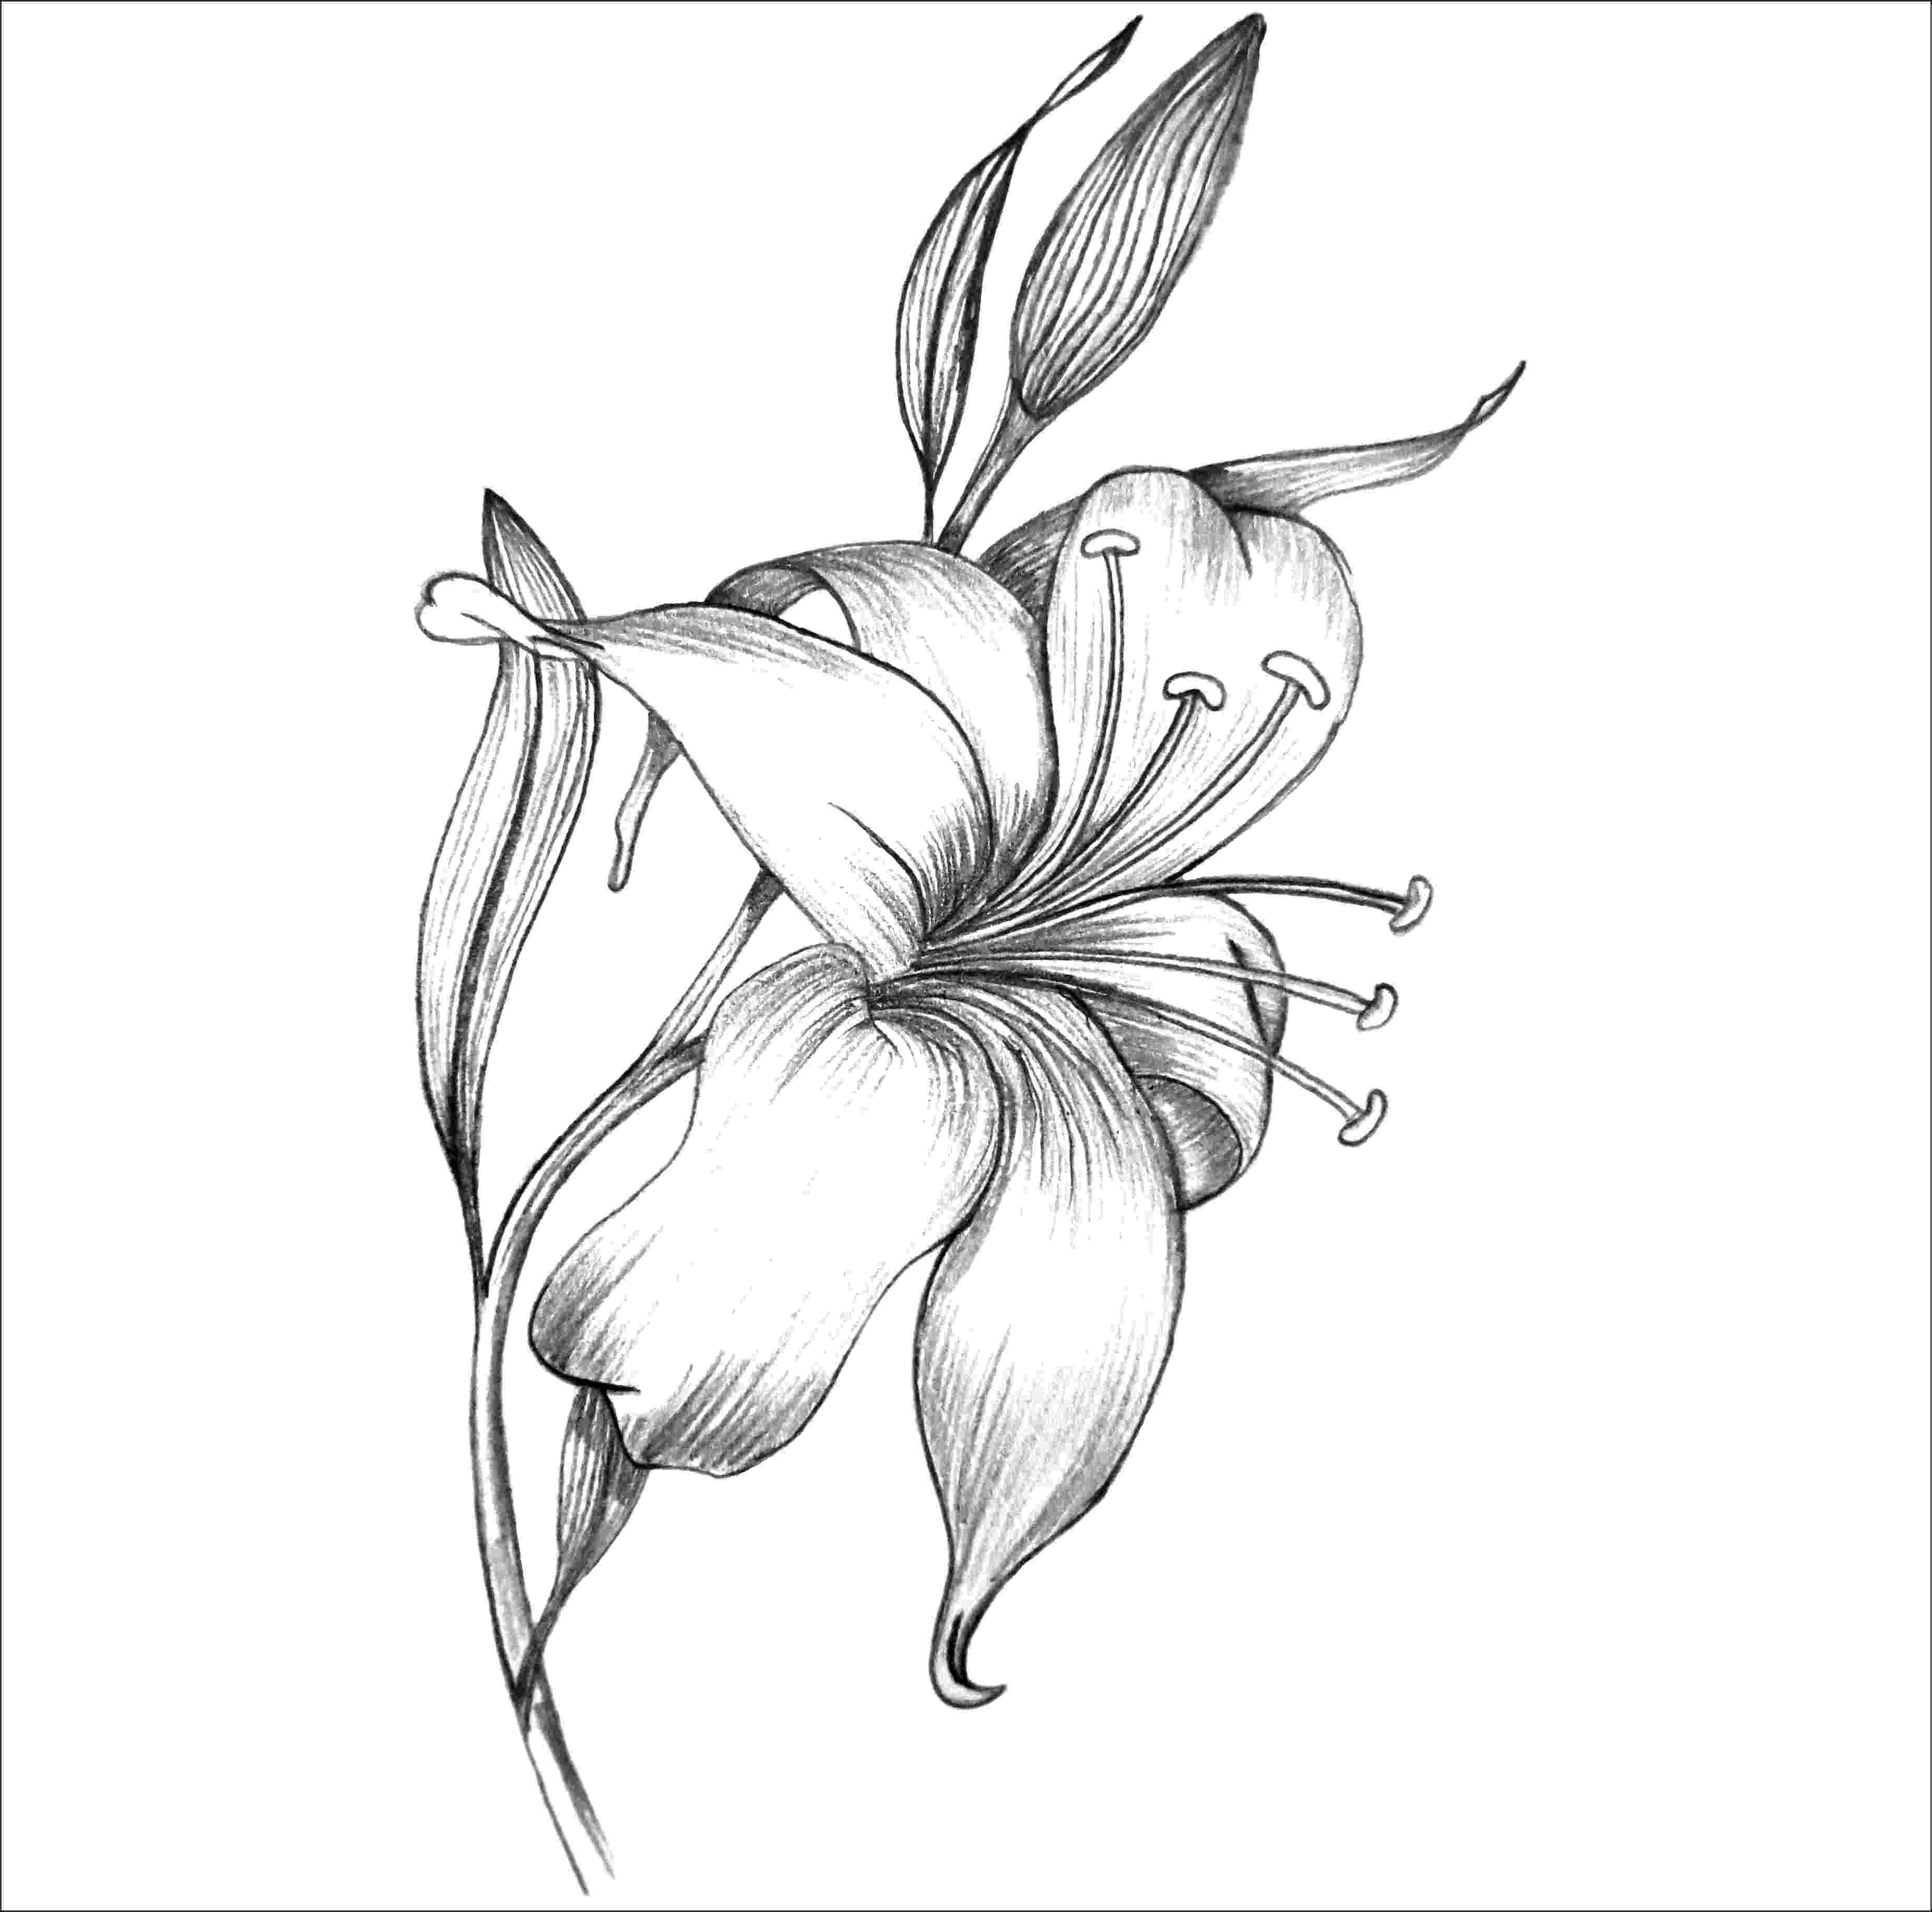 lily sketch how to draw a lily in a few easy steps easy drawing guides lily sketch 1 1